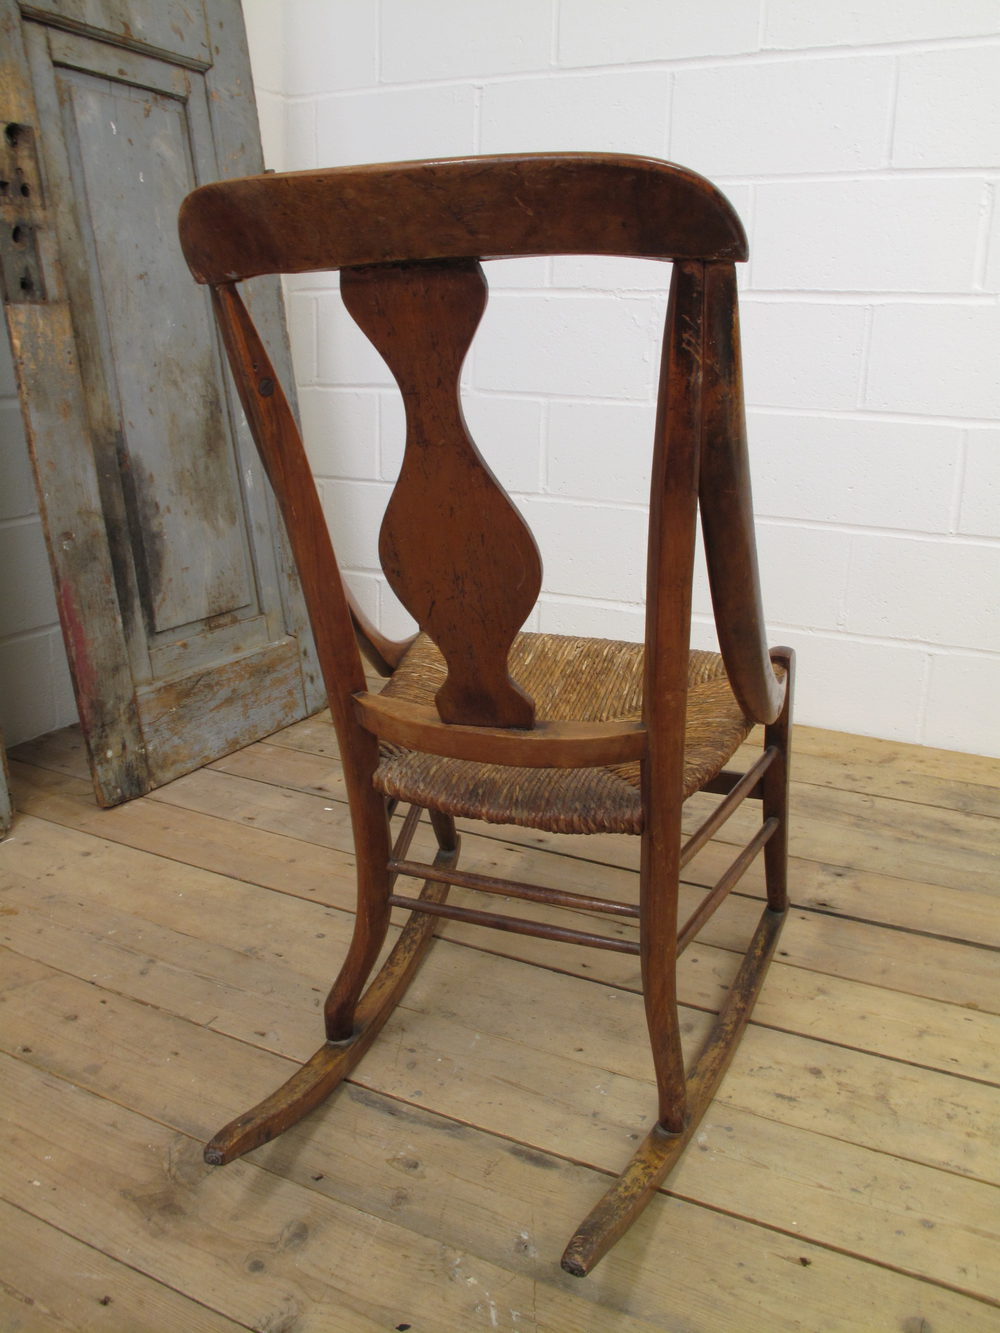 ... Circa 1900 Antique Rocking Chairs ... - French Cherrywood Rocking Chair, Circa 1900 - Antiques Atlas